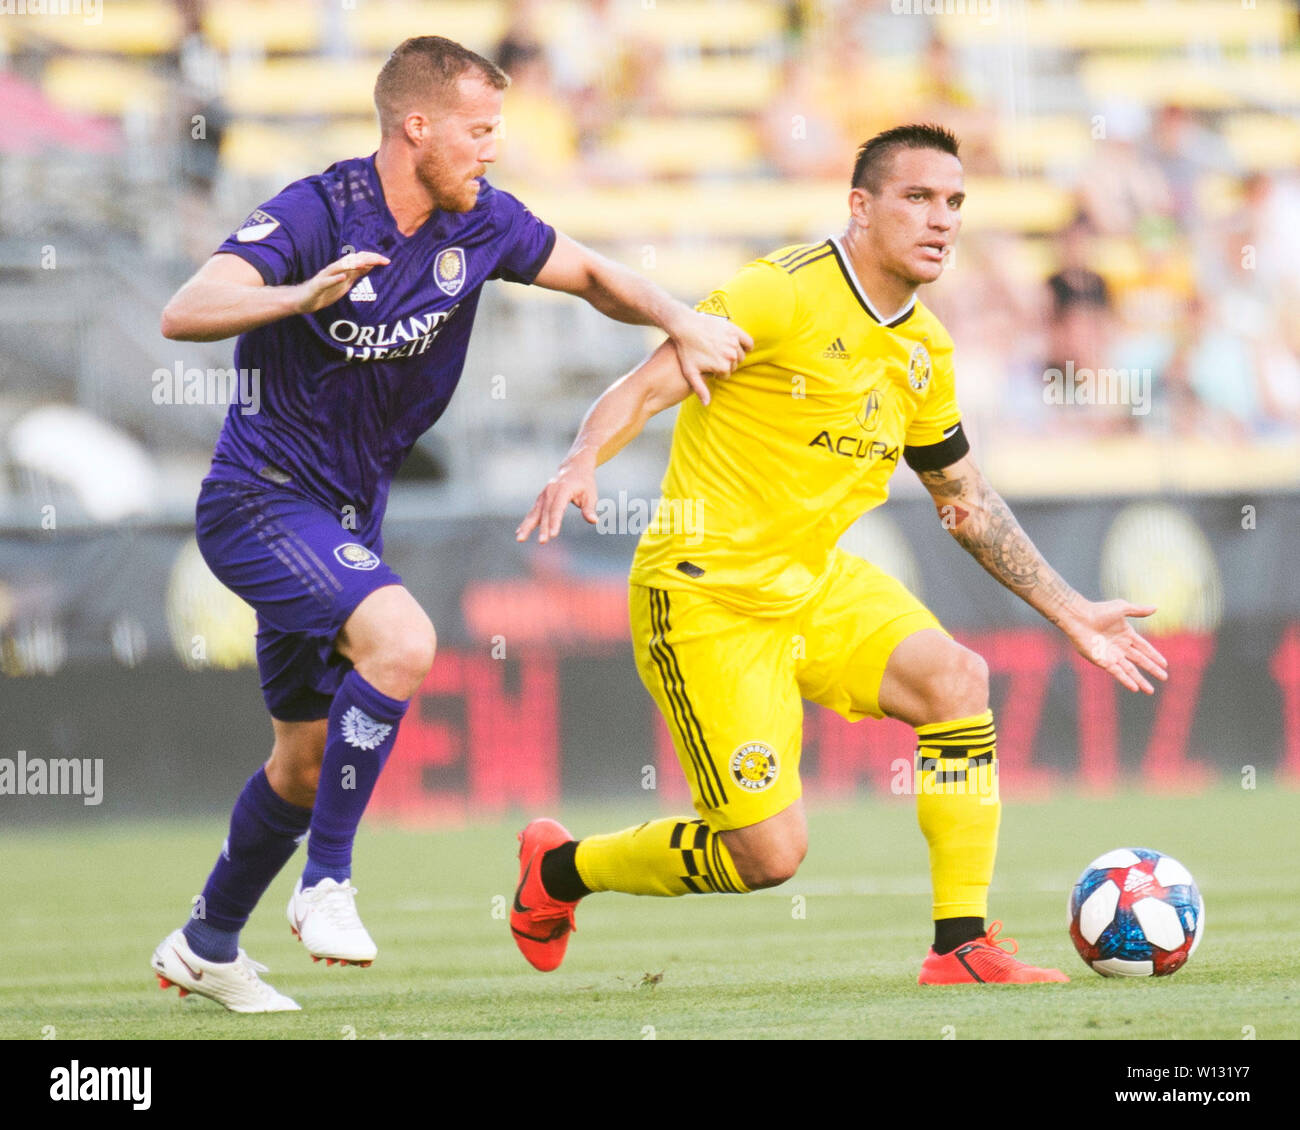 June 29, 2019: Columbus Crew SC midfielder David Guzman (9) fights for the ball against Orlando City midfielder Oriol Rosell (20) in their game in Columbus, Ohio, USA. Brent Clark/Alamy Live News - Stock Image